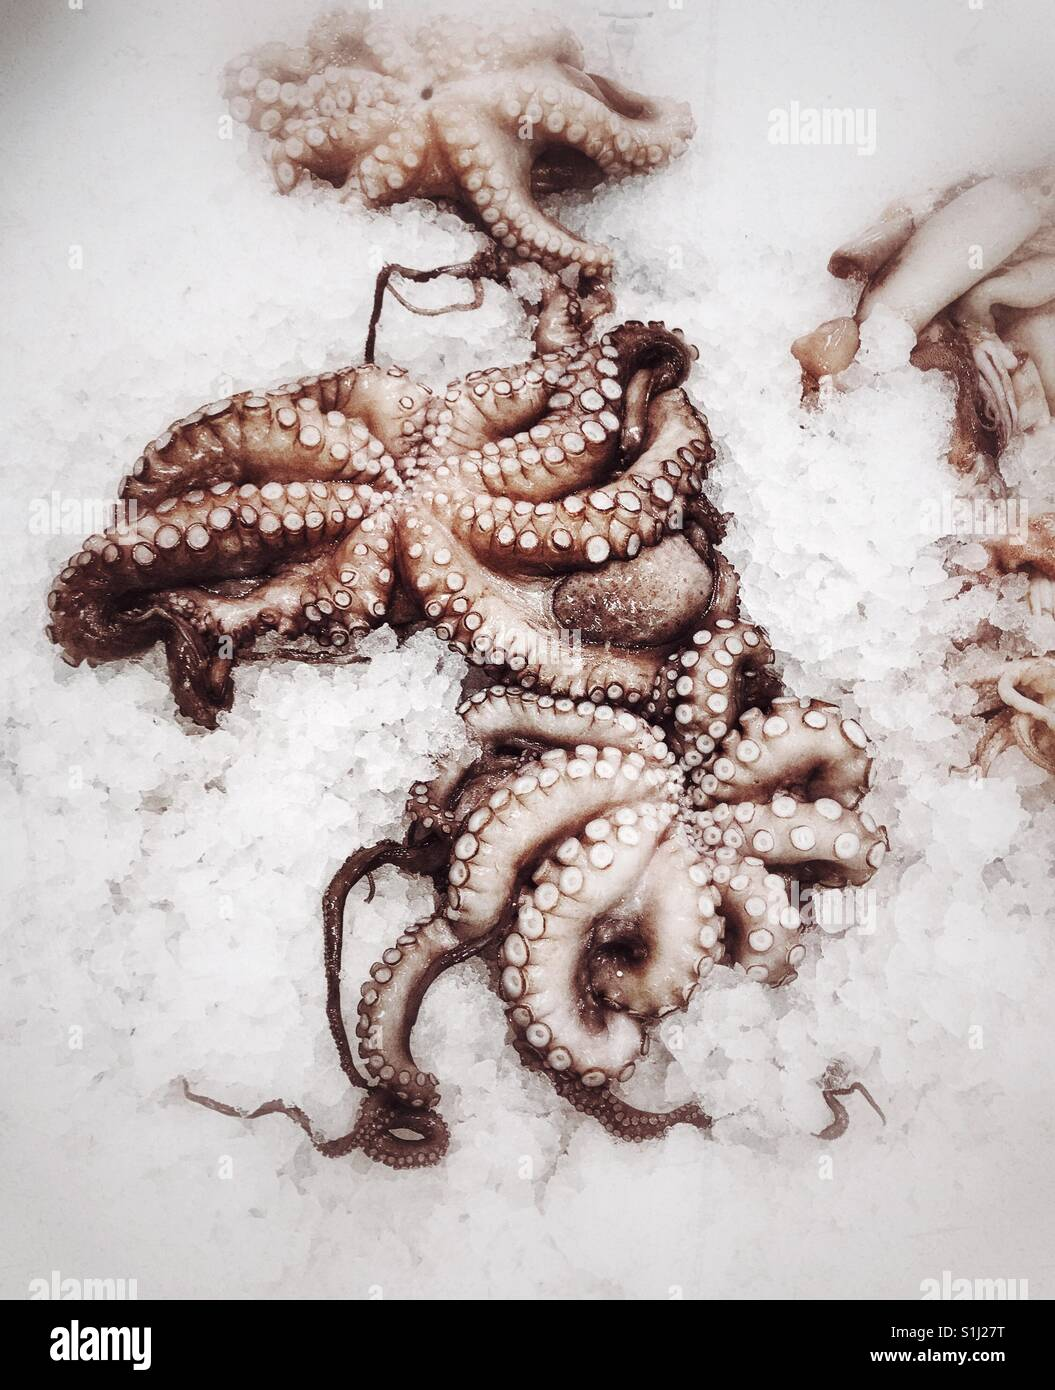 Octopi in a cold display - Stock Image